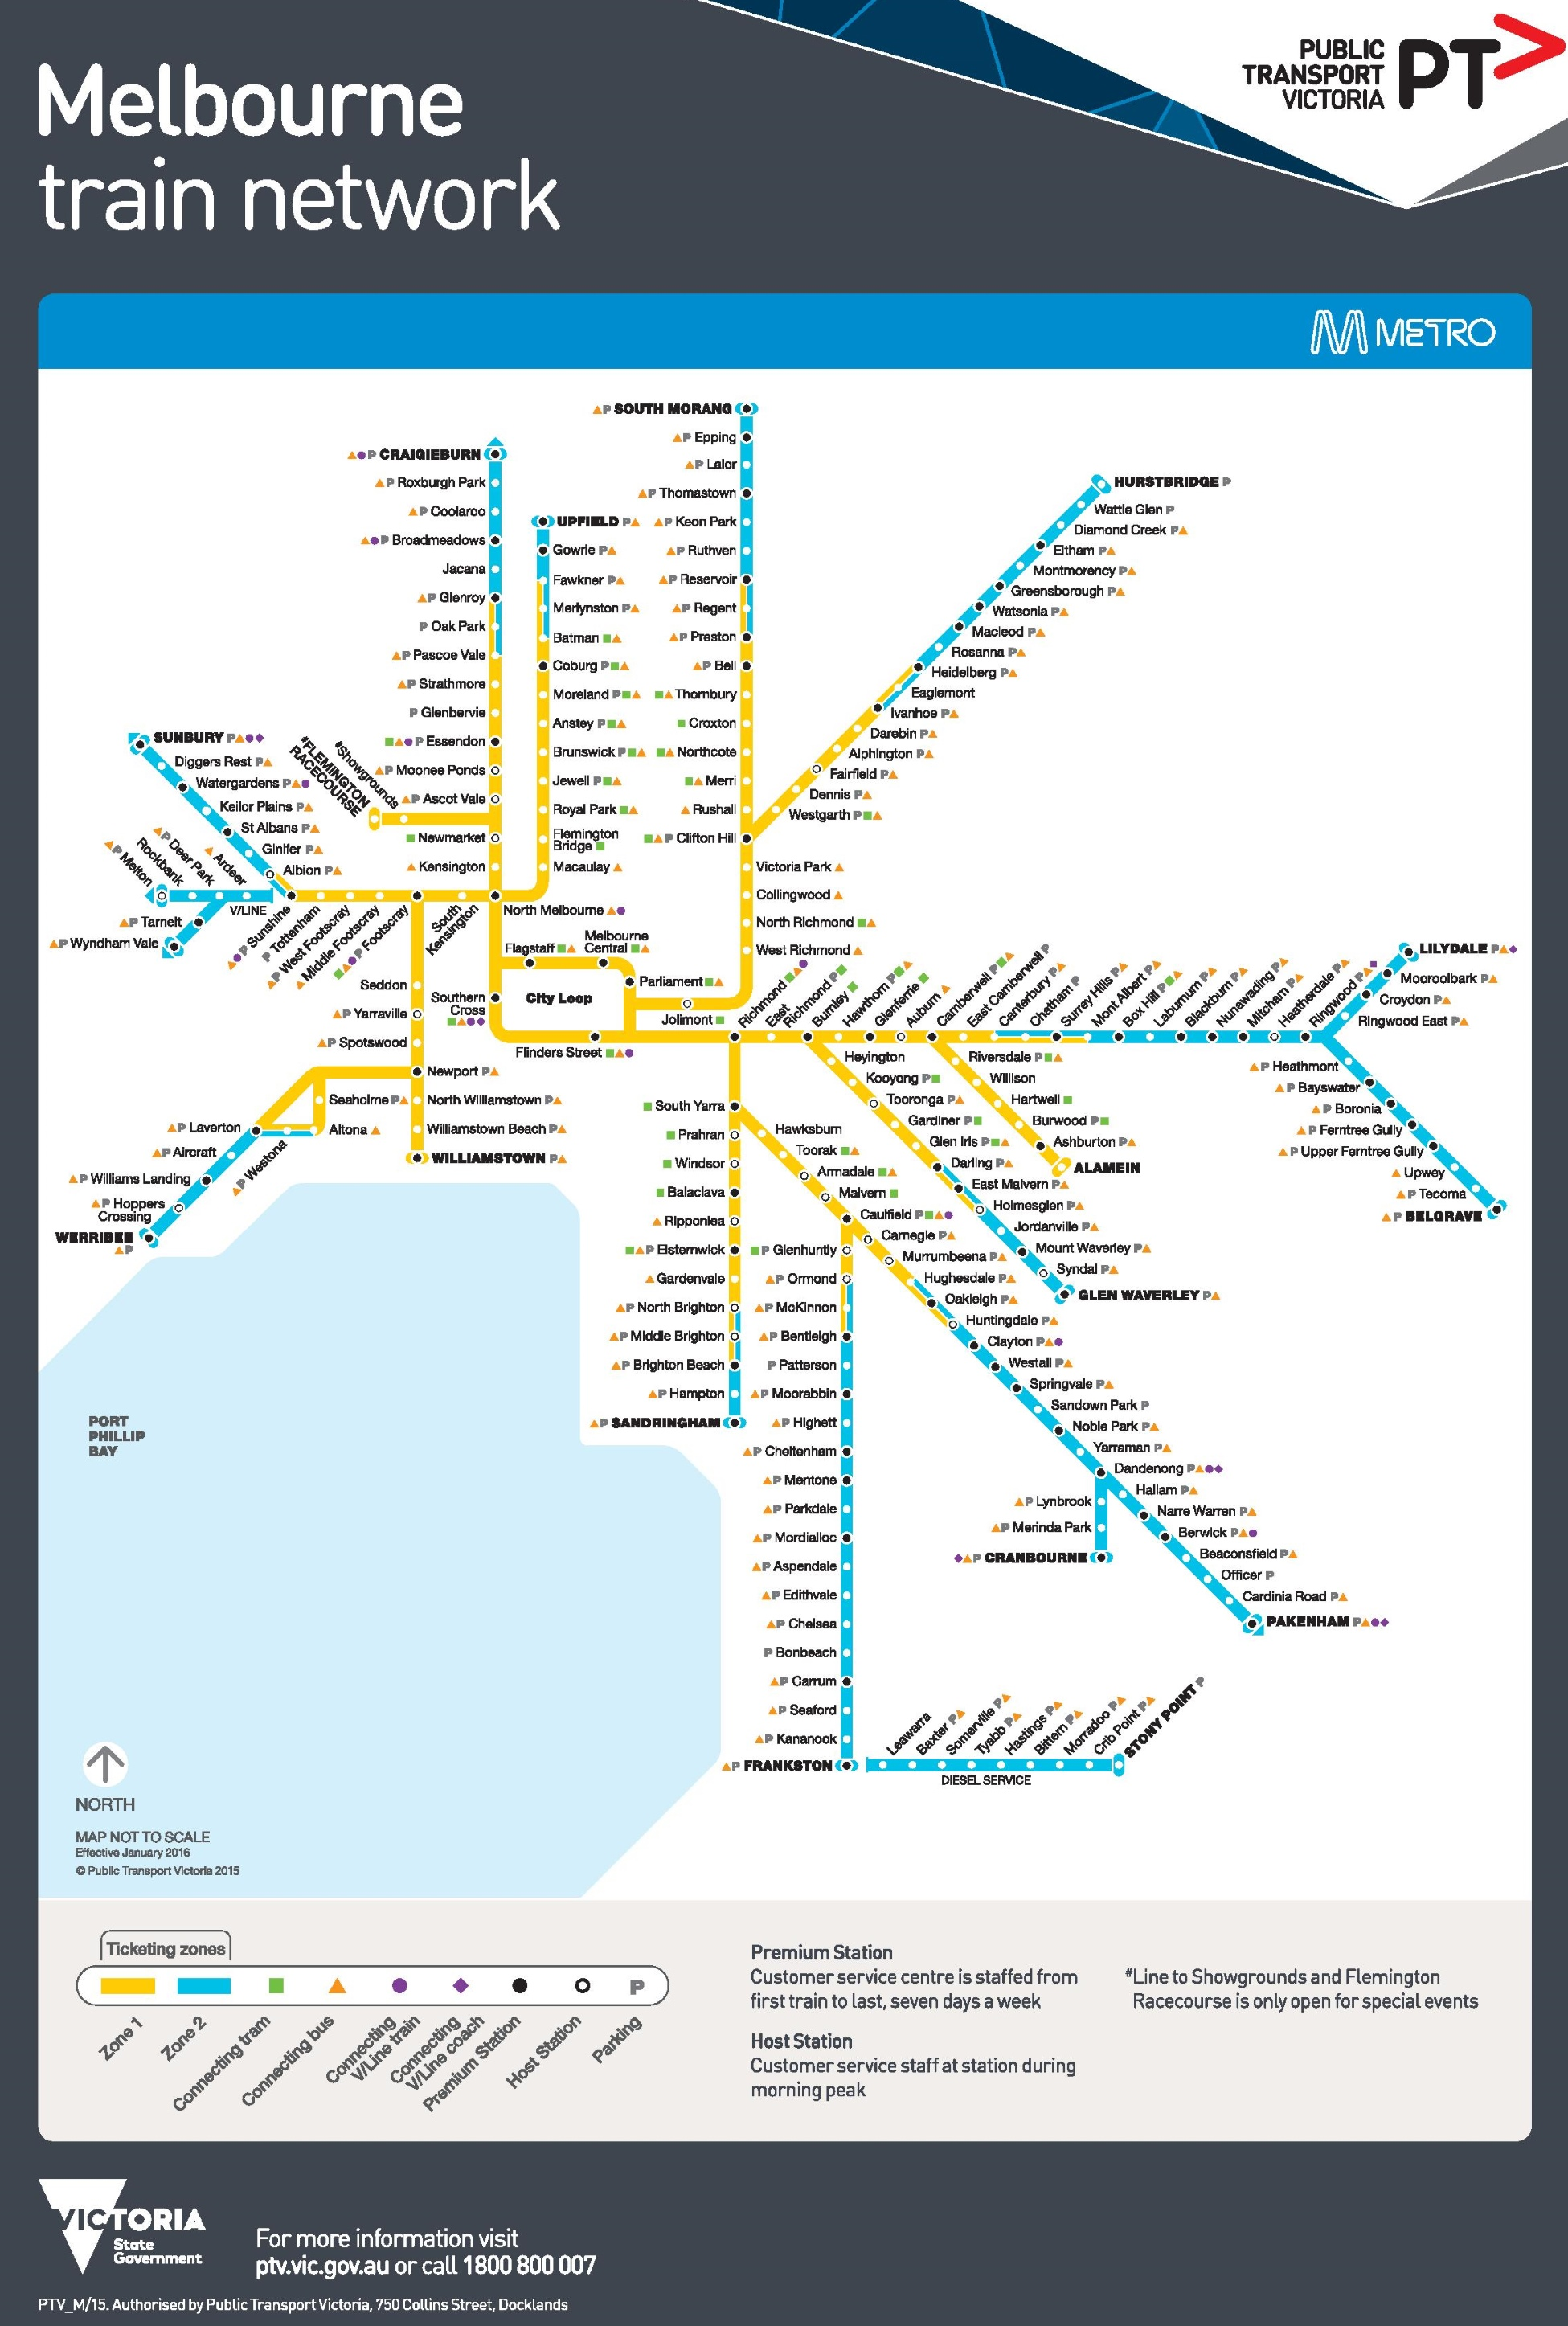 Melbourne Metro Map Melbourne metro train map Melbourne Metro Map